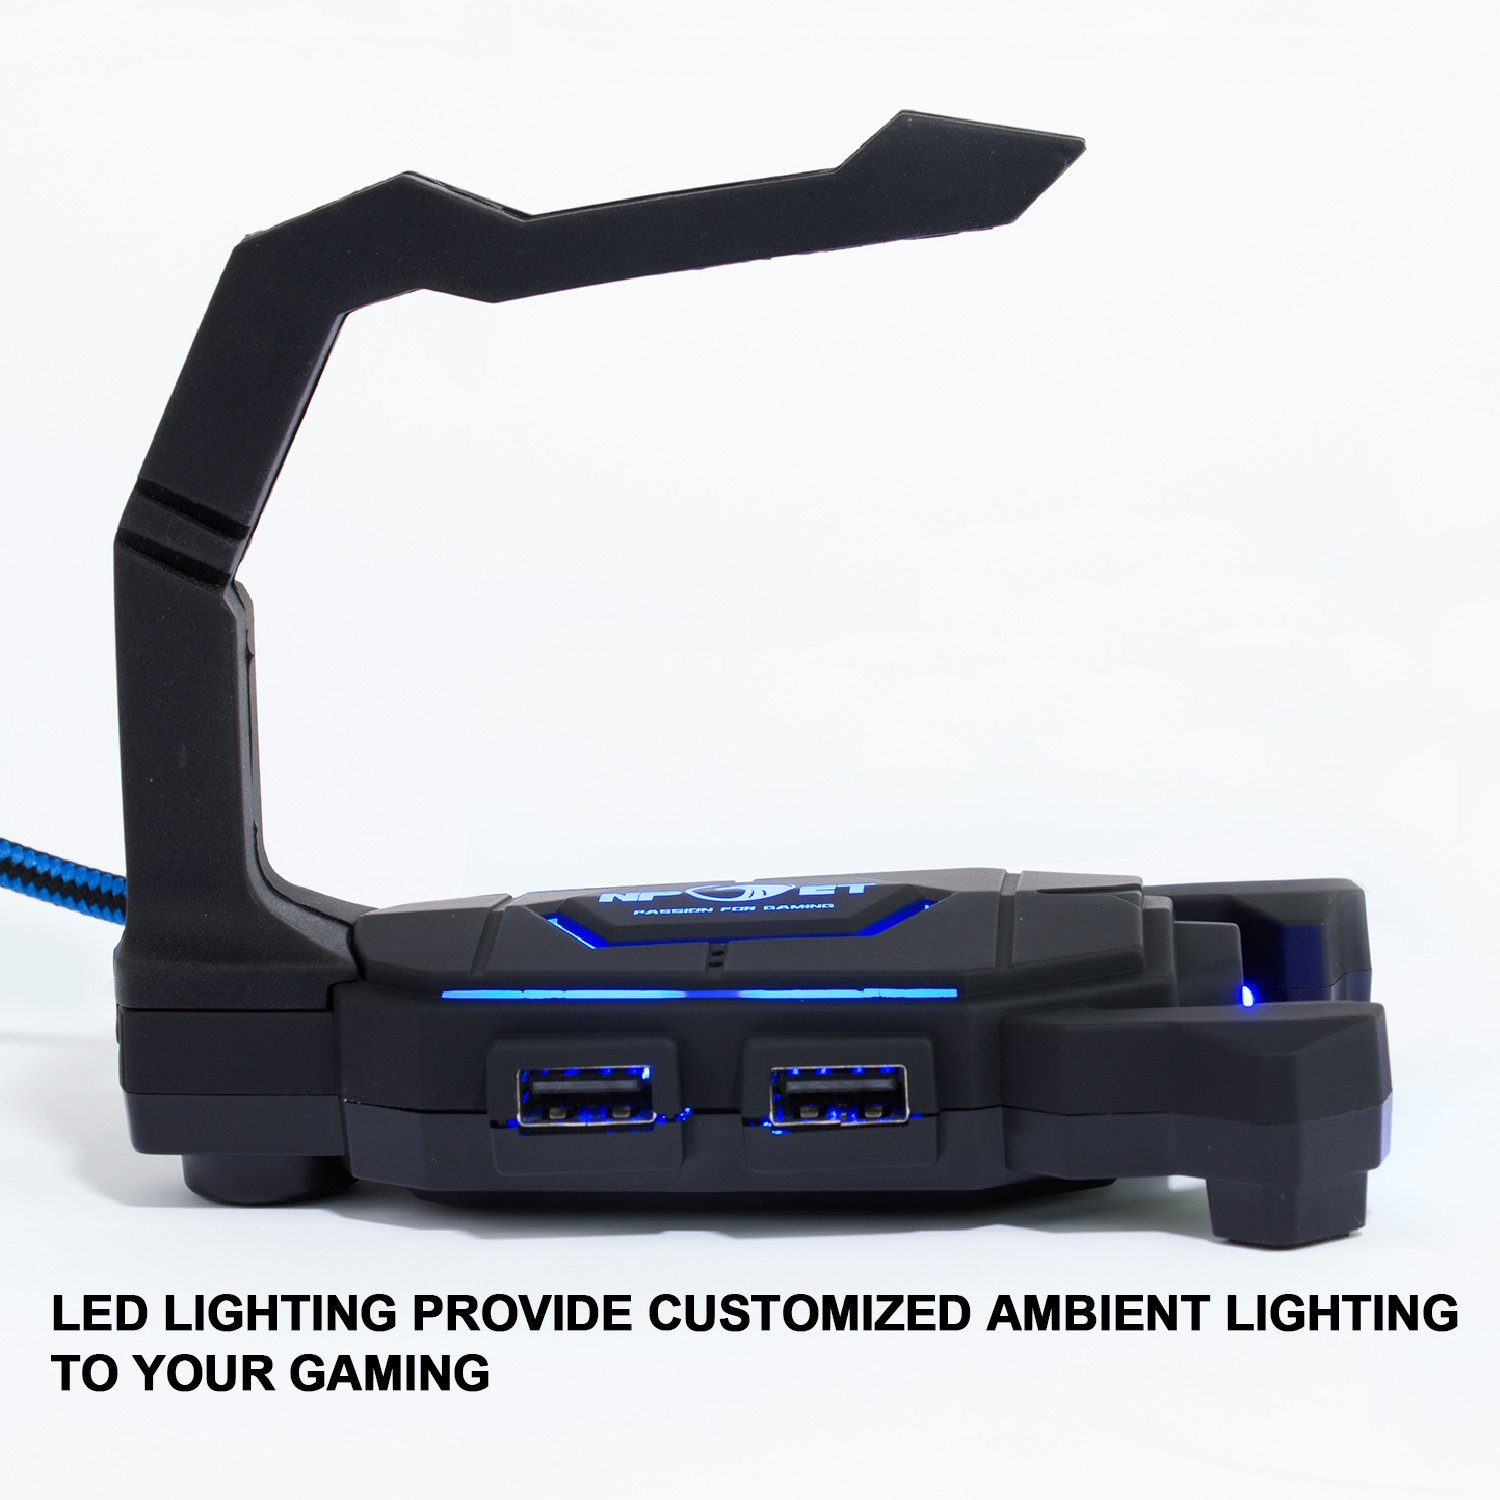 Gaming Mouse BungeeCord Holder with 4-Port USB HUB, NPET H01 LED Lighting Mouse Cable Manager, Non-Slip Rubber Pads Base, Clamping Arrangements, Designed for Pro Esports, Competitive Games by NPET (Image #10)